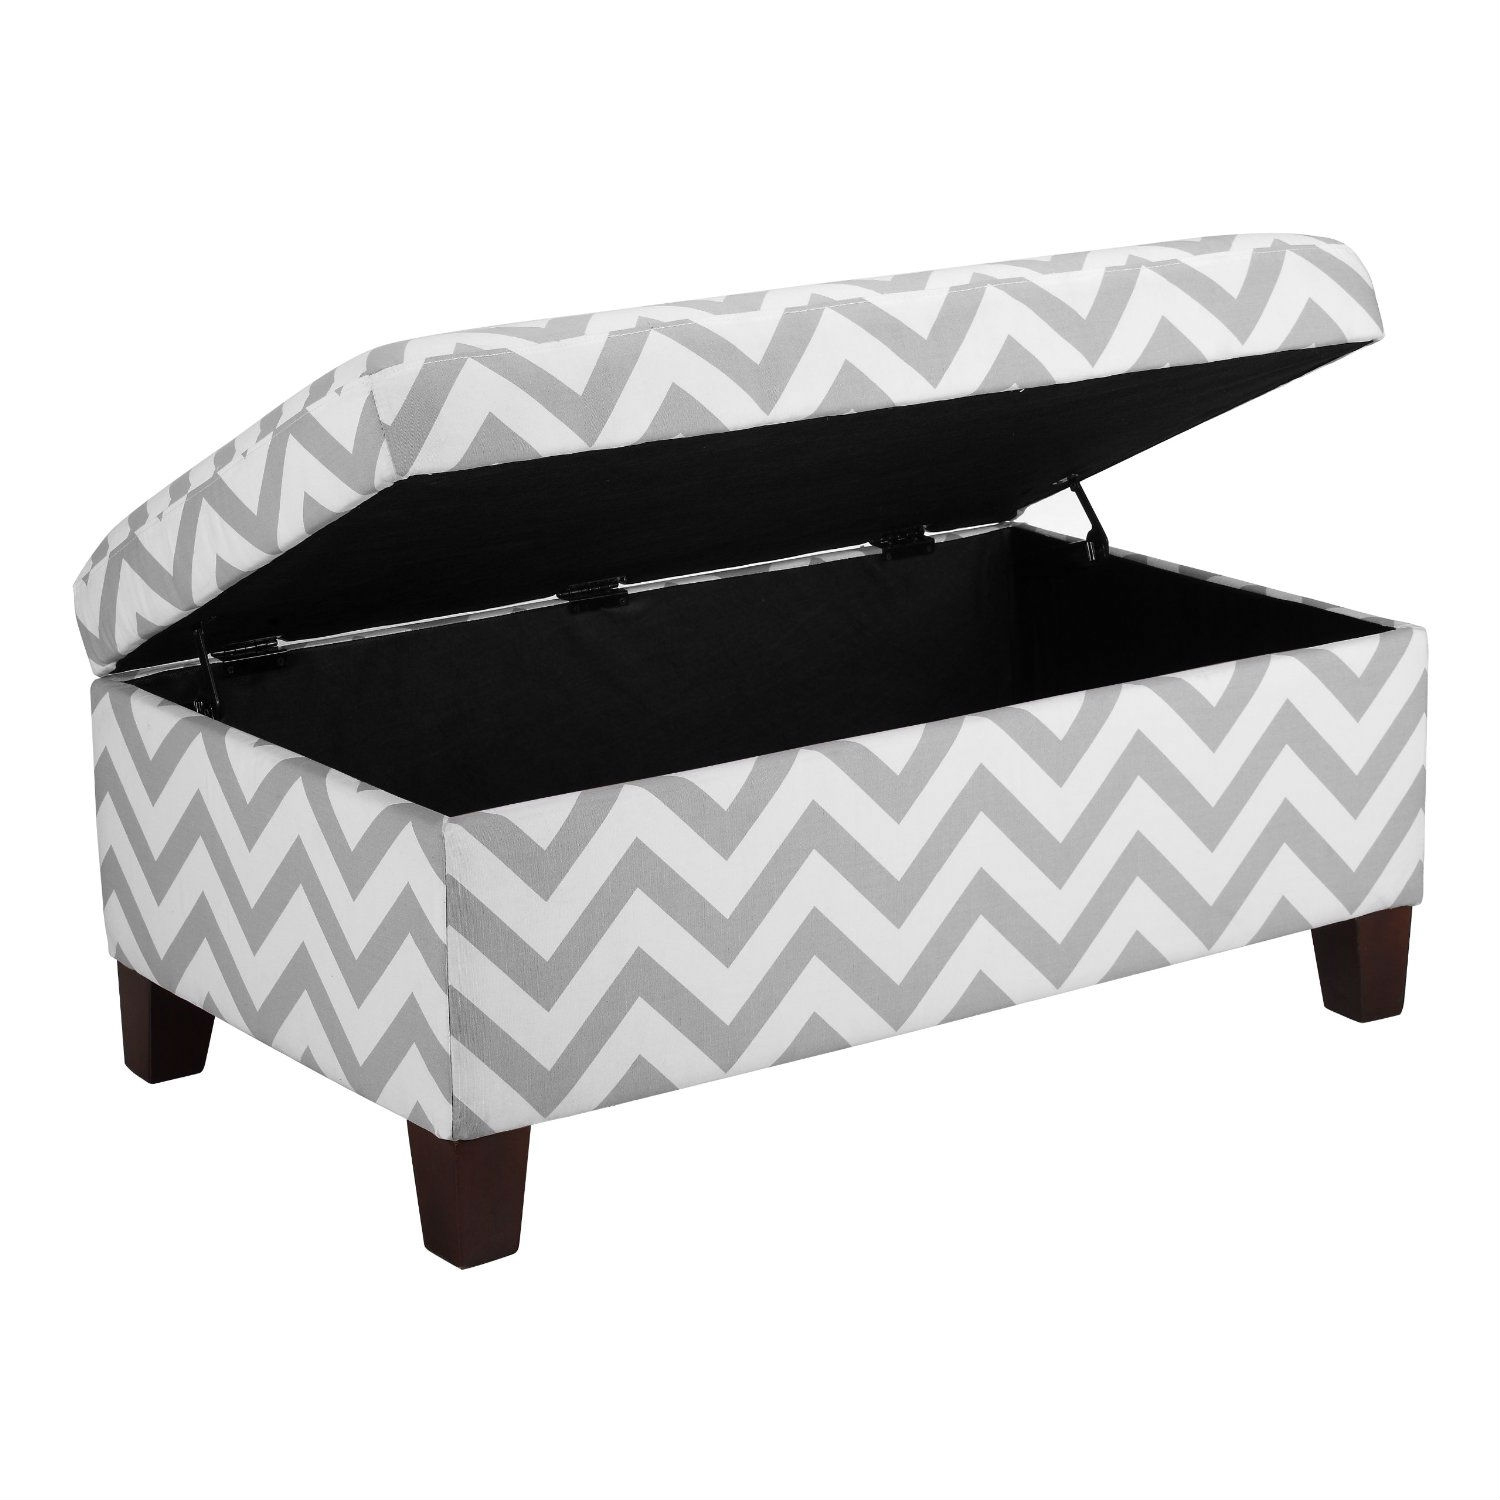 Good Padded Ottoman Bench Part - 7: Grey U0026 White Chevron Stripe Padded Storage Ottoman Bench